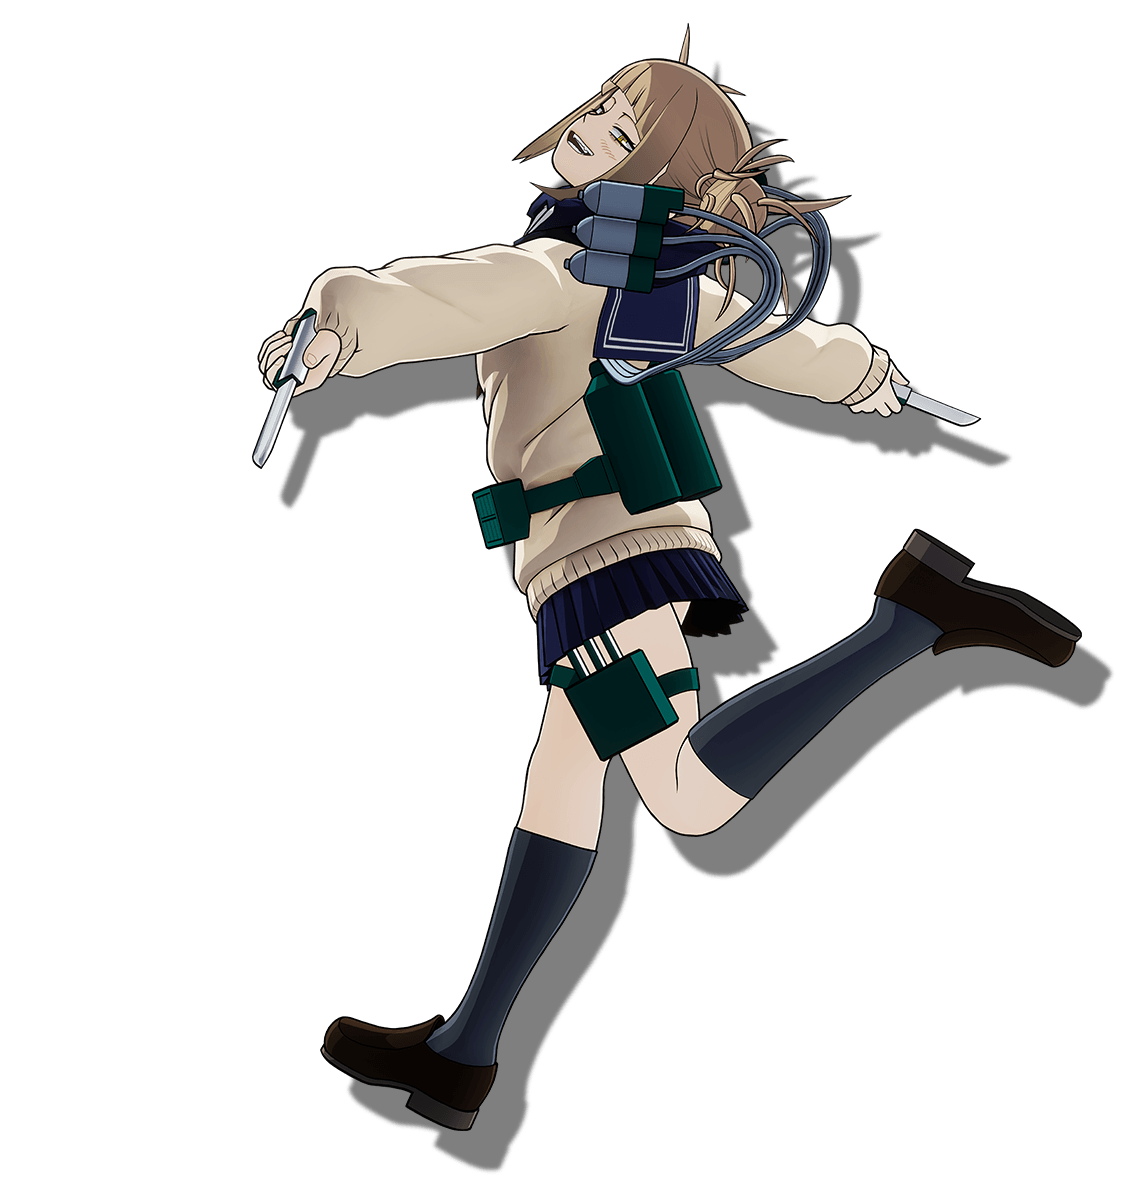 Himiko Toga 3D Render (My Hero One's Justice 2).png